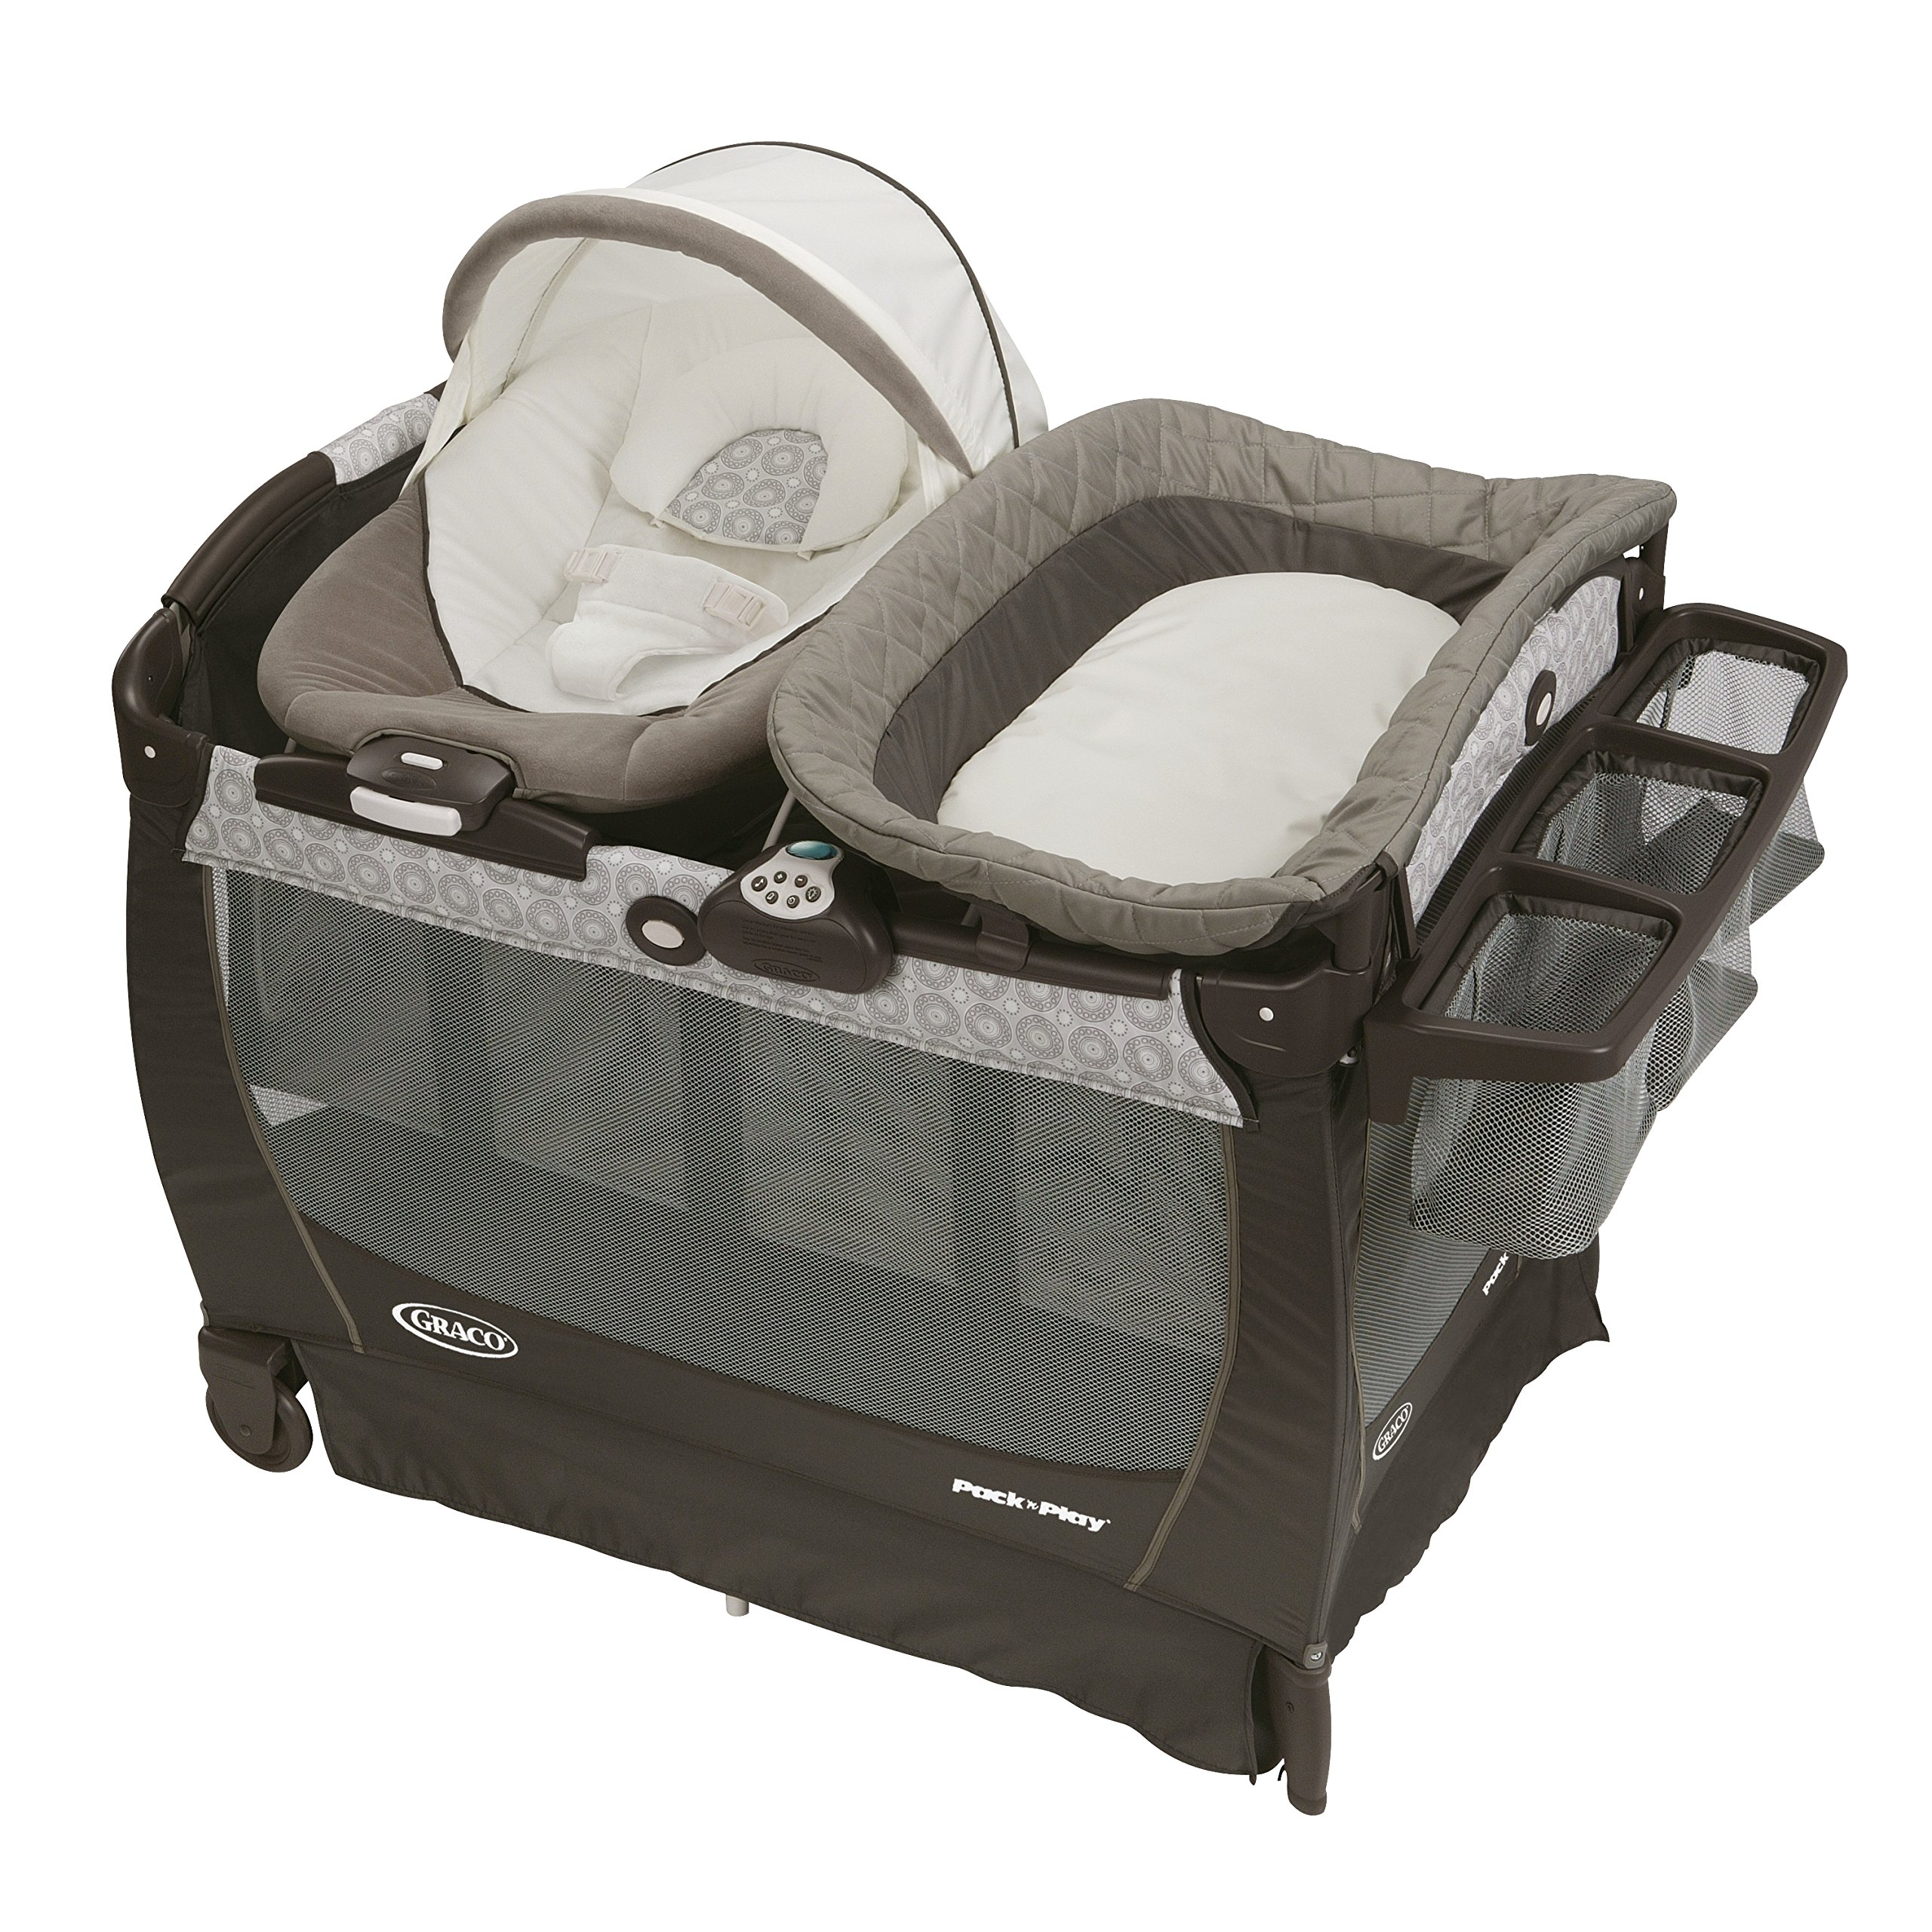 in pcr pierce playard amazon cribs image helpful best rated n playards pack play portable travel crib customer nook product com baby reviews lotus and graco nimble